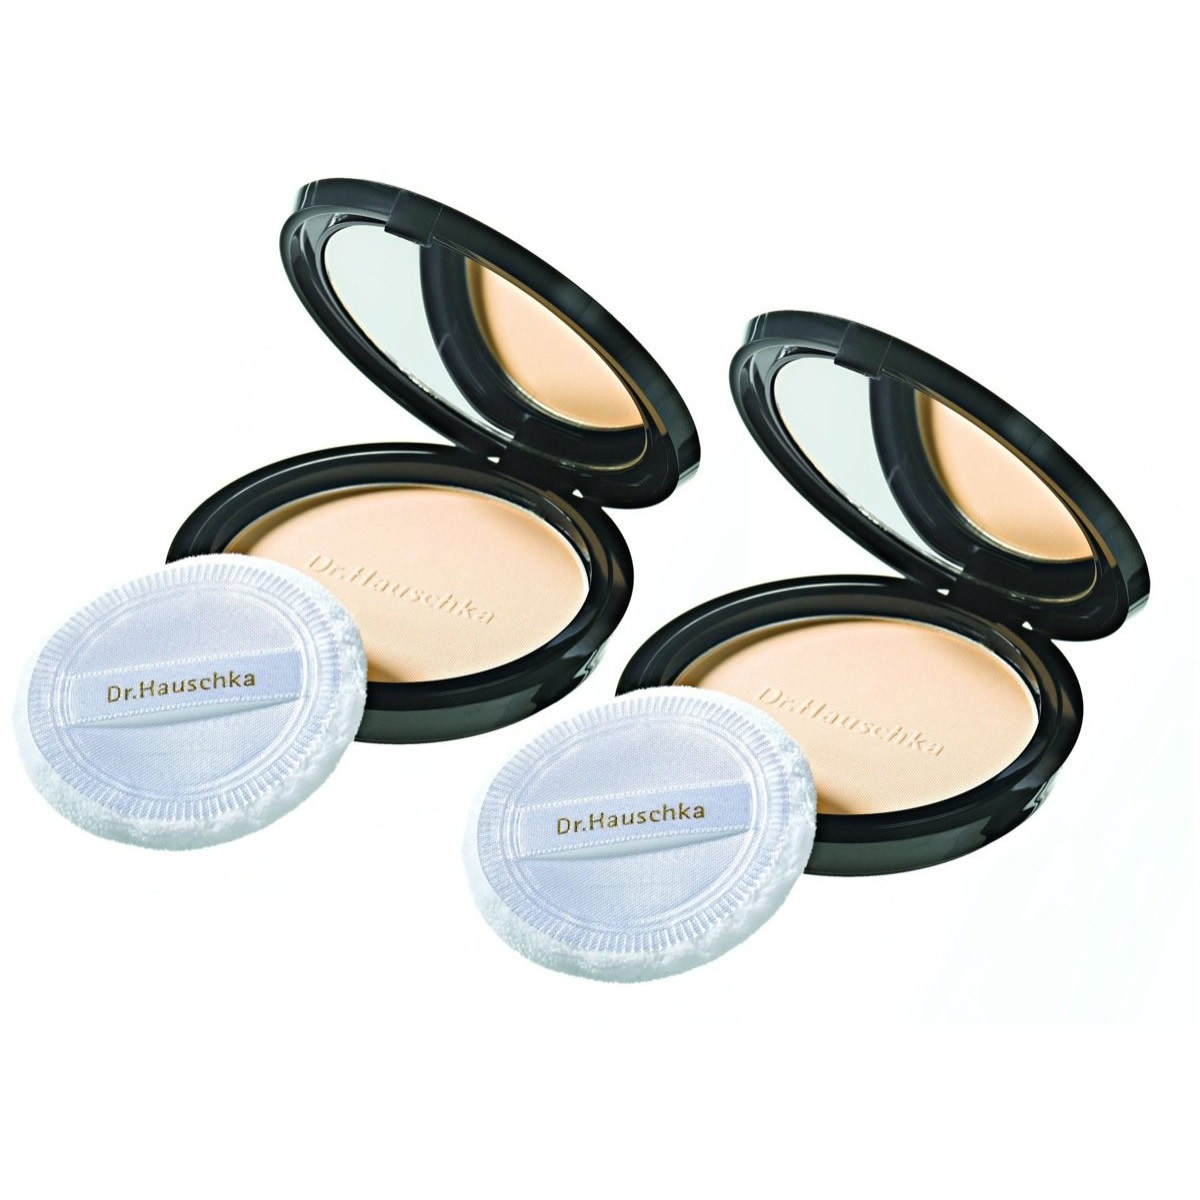 Dr Hauschka Translucent Face Powder - Compact